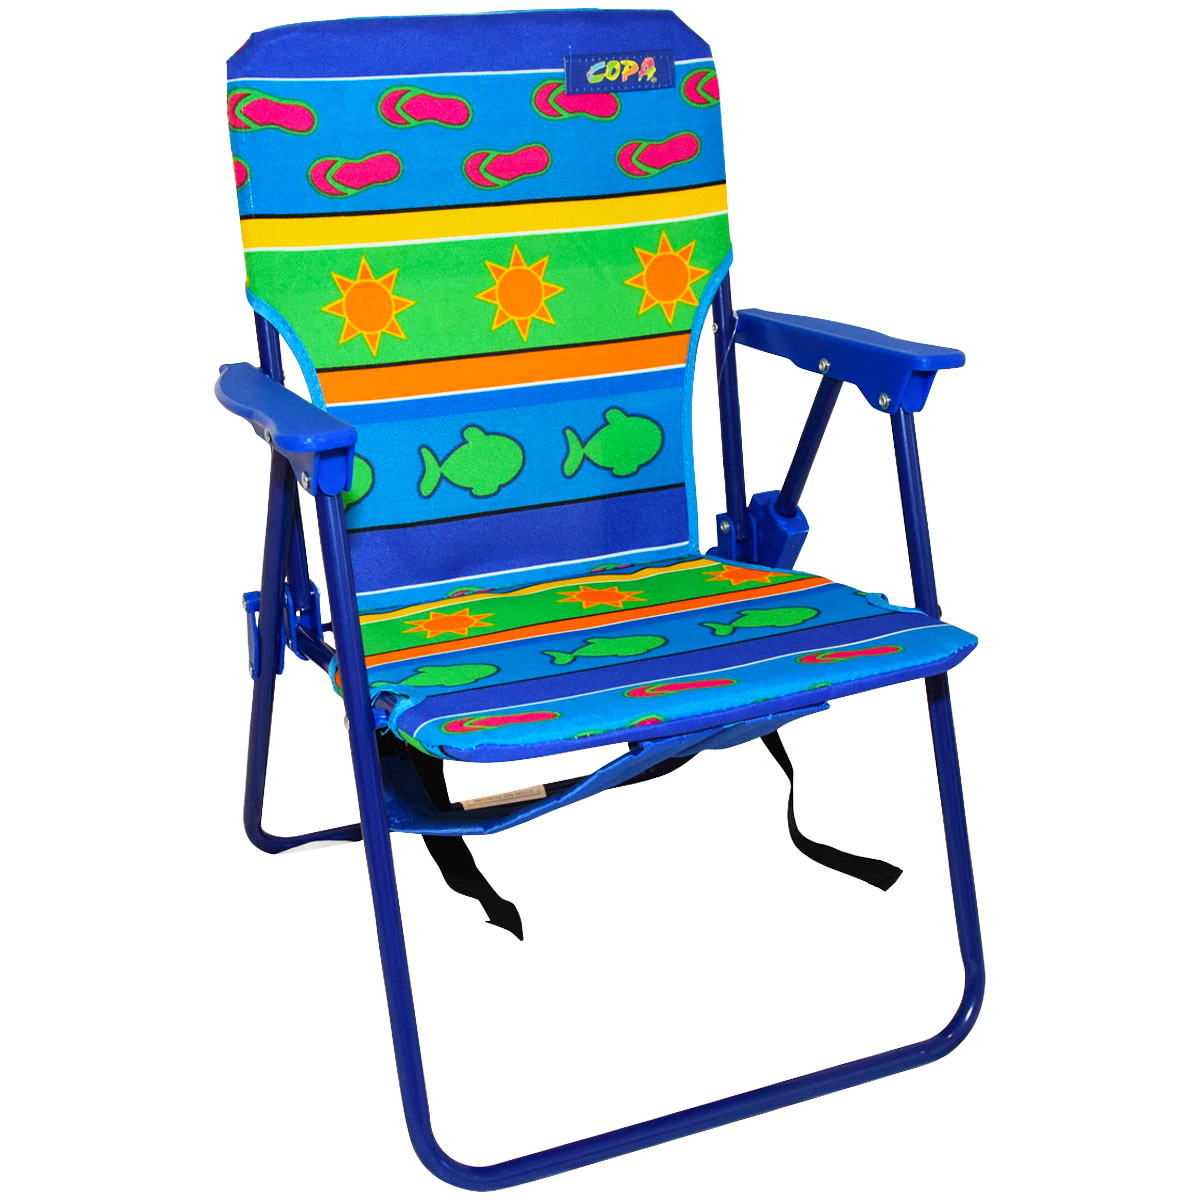 Childrens Beach Chairs Cheaper Than Retail Price Buy Clothing Accessories And Lifestyle Products For Women Men